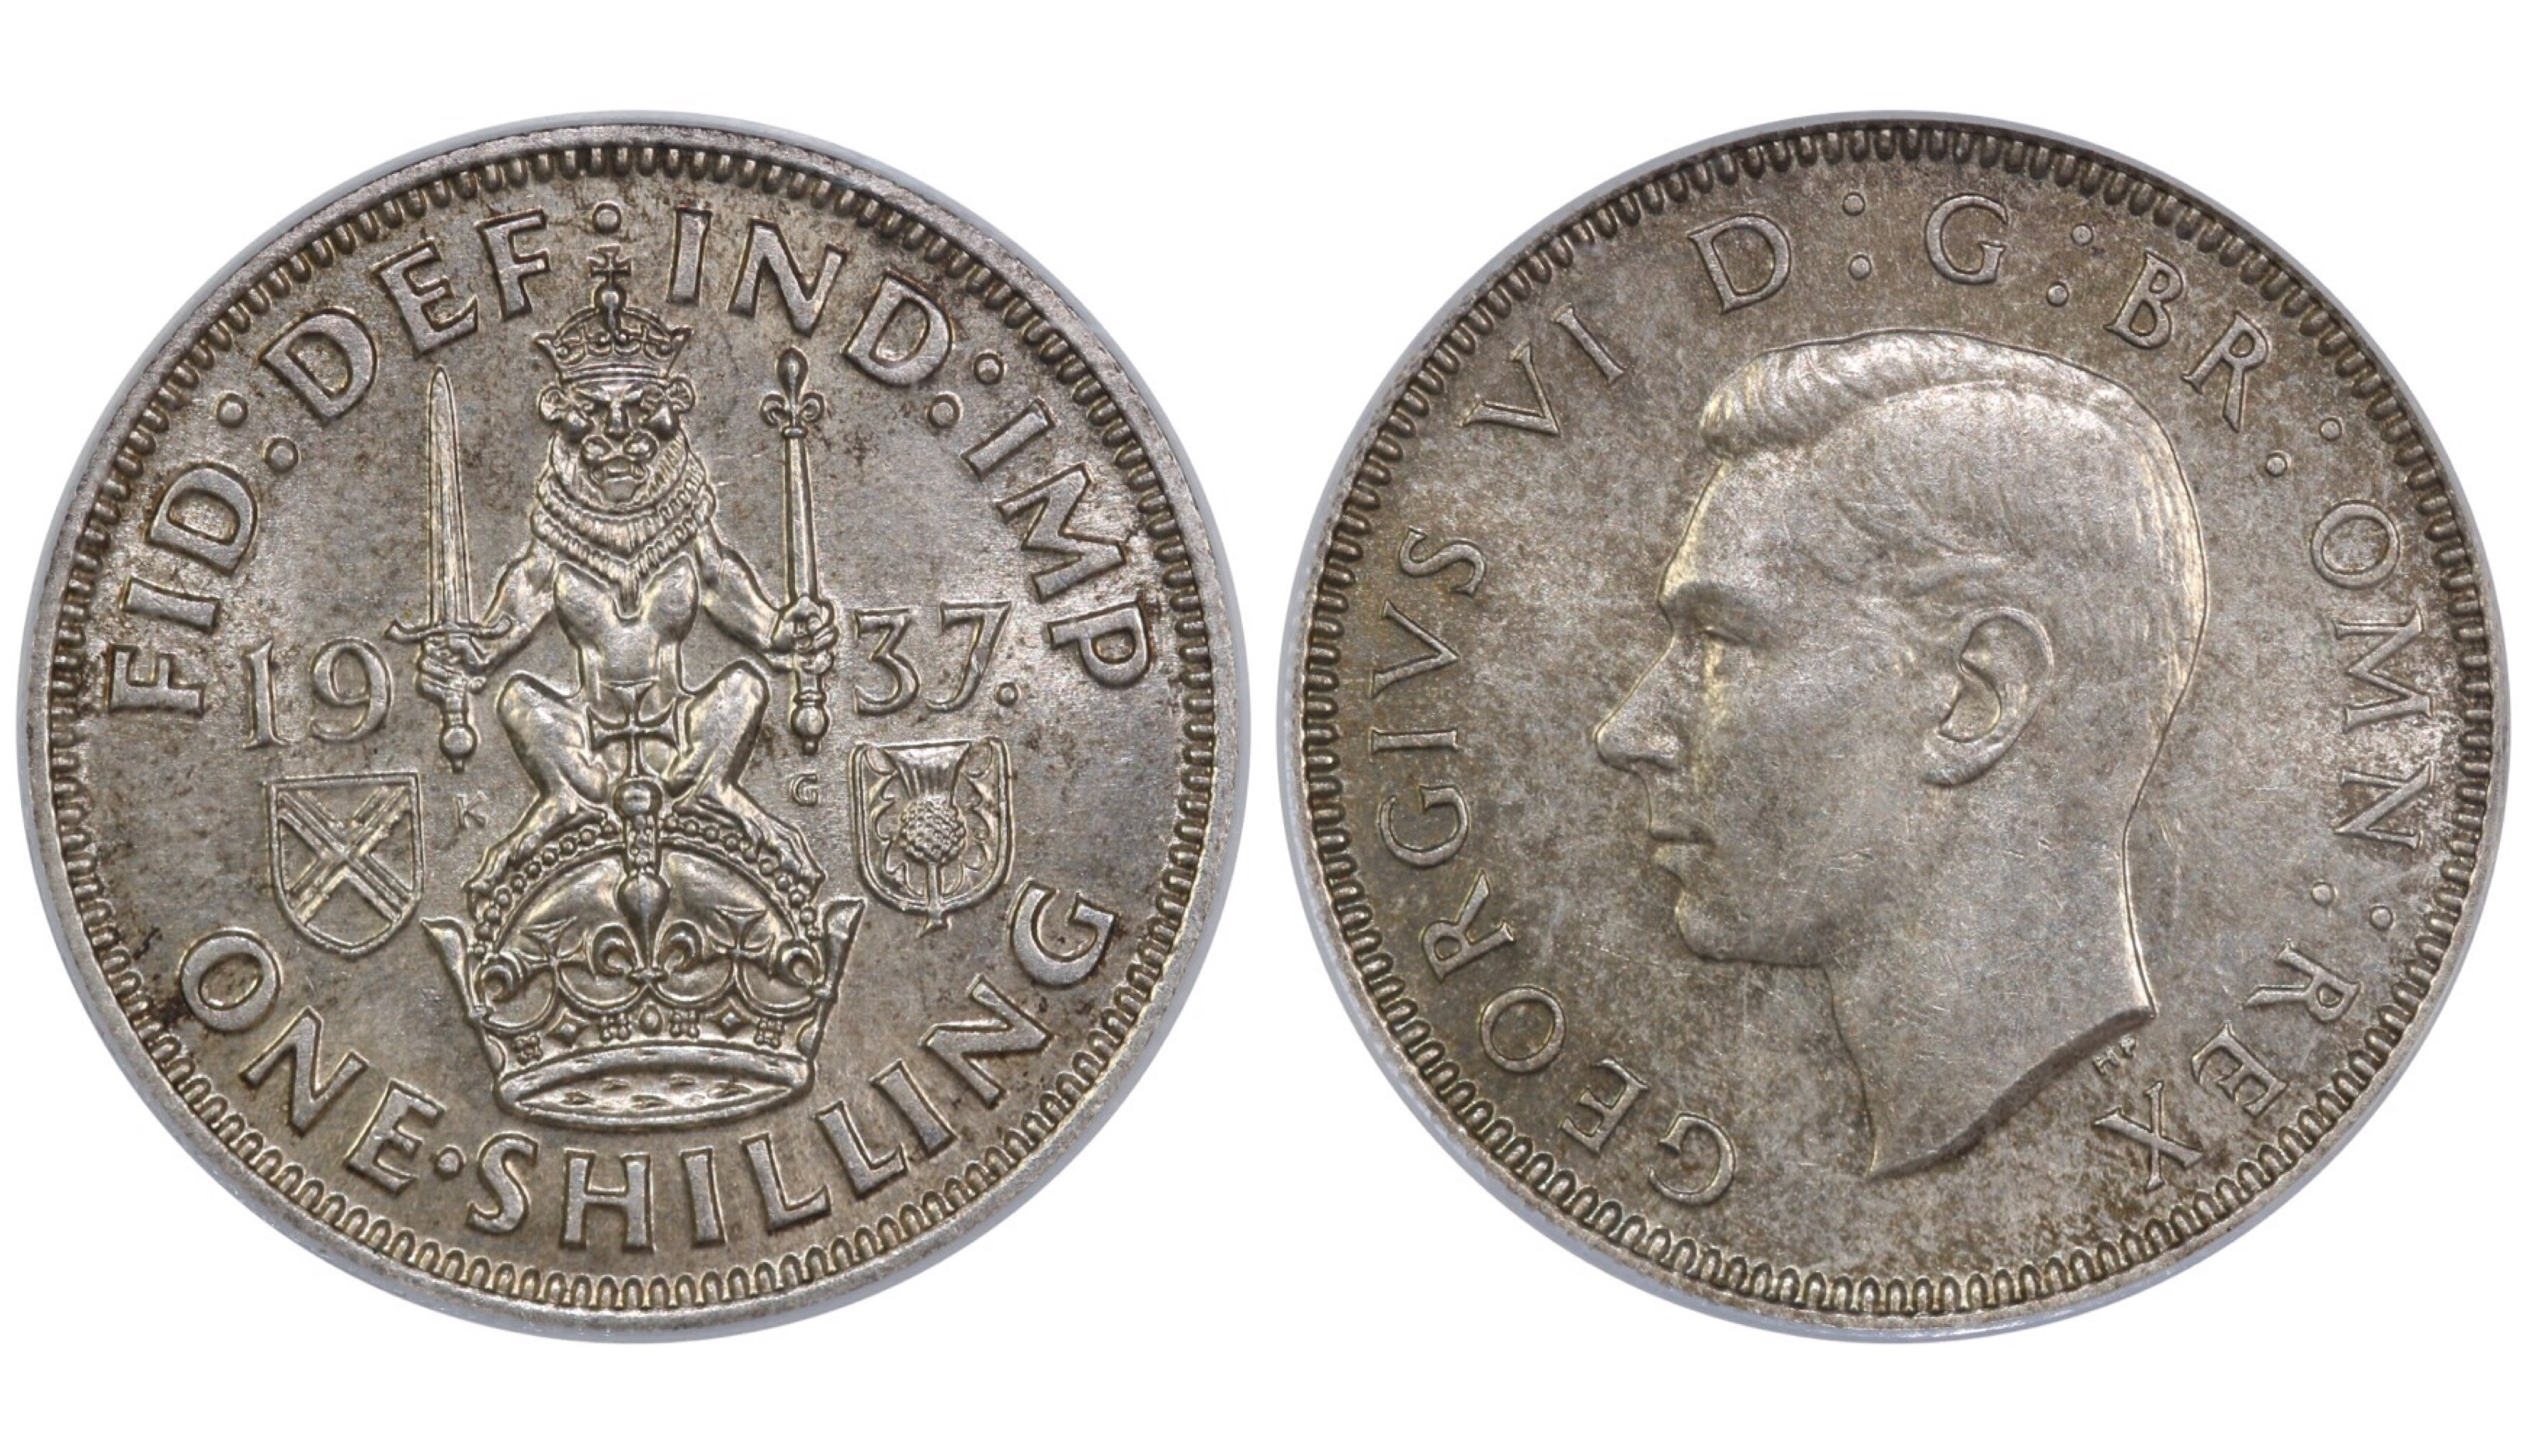 1937 'Scottish' Shilling, CGS 65, George VI, ESC 1452, UIN 20858